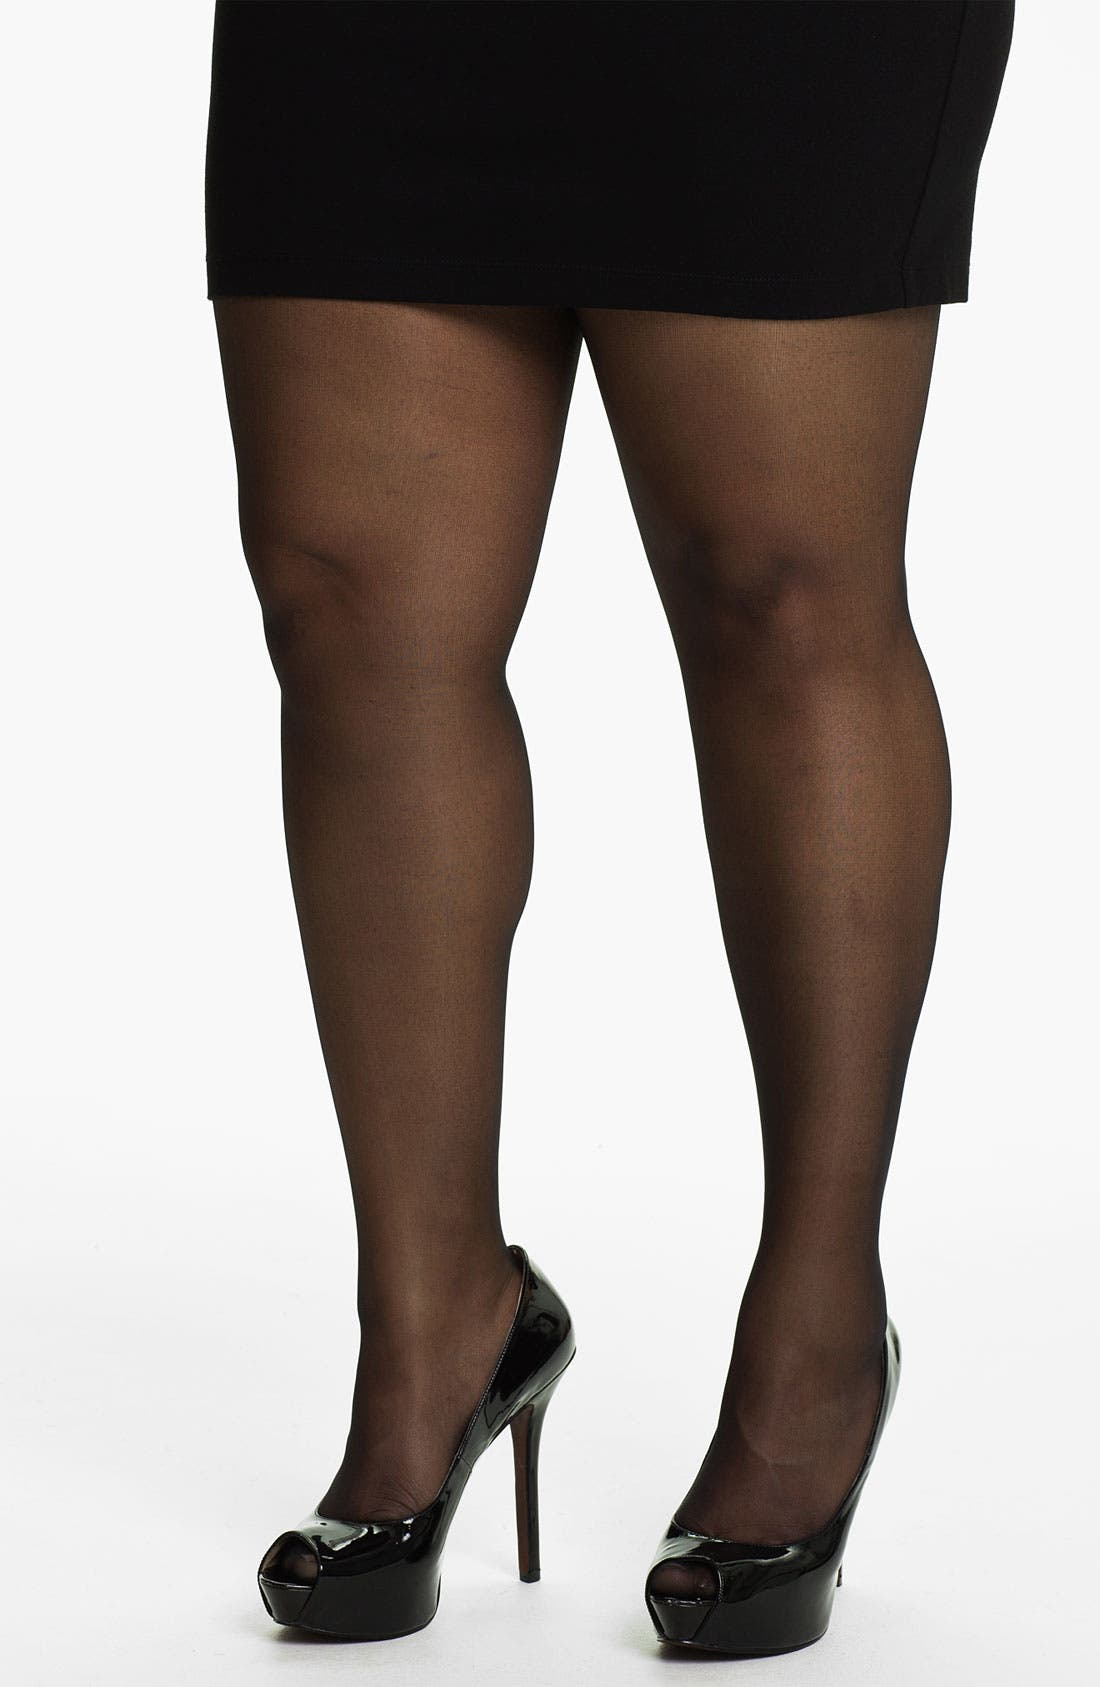 Alternate Image 1 Selected - Pretty Polly 'Curves' 10 Denier Tights (Plus Size)